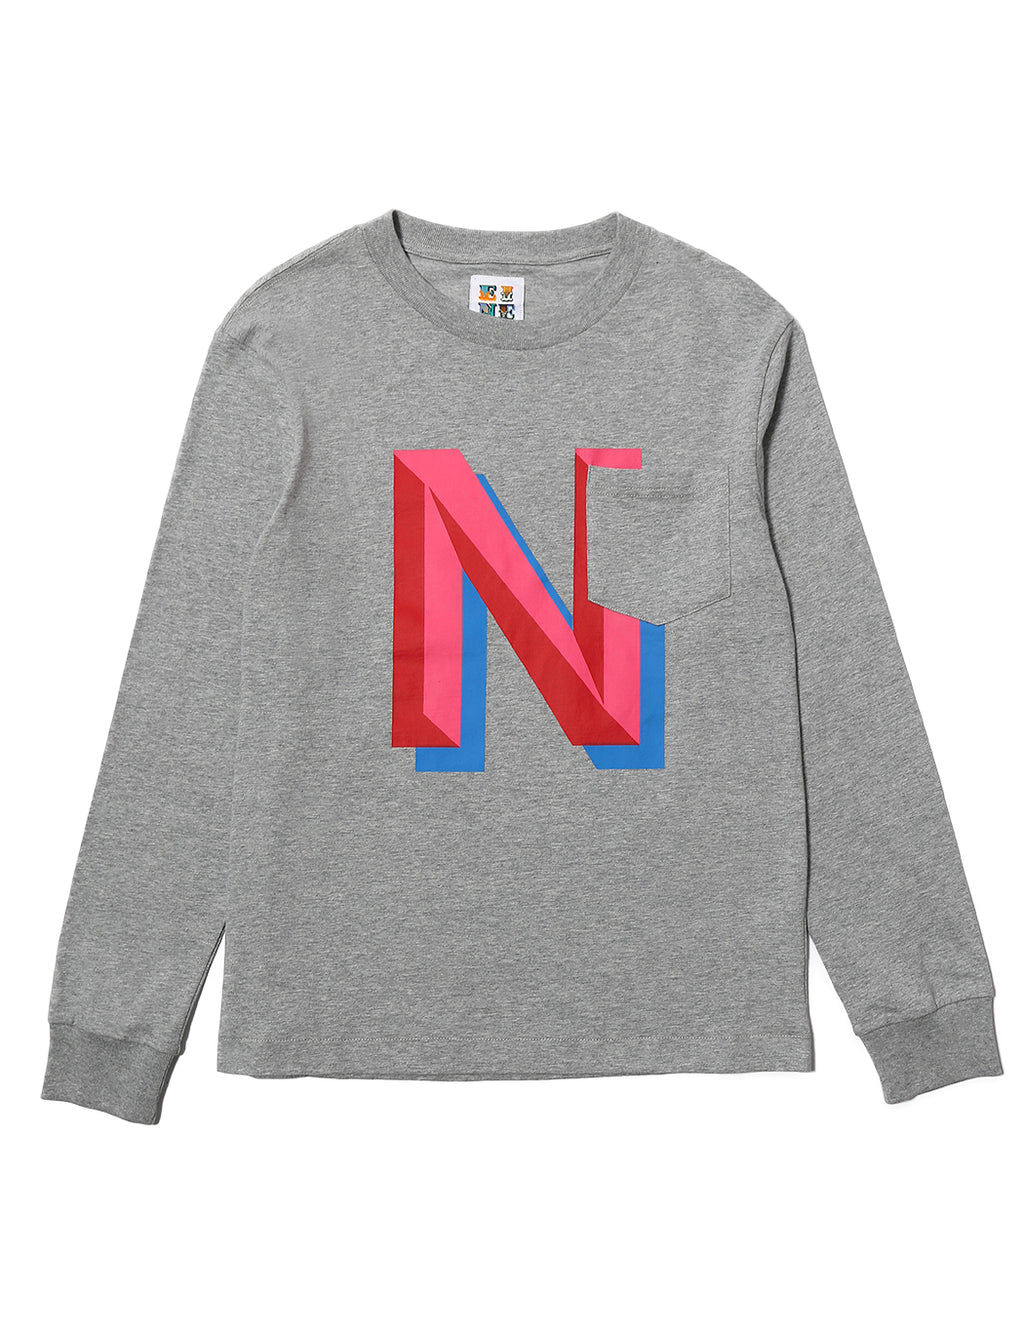 Gaspipe N Pocket L/S T-Shirt - Heather Grey - Eine London by Ben Eine